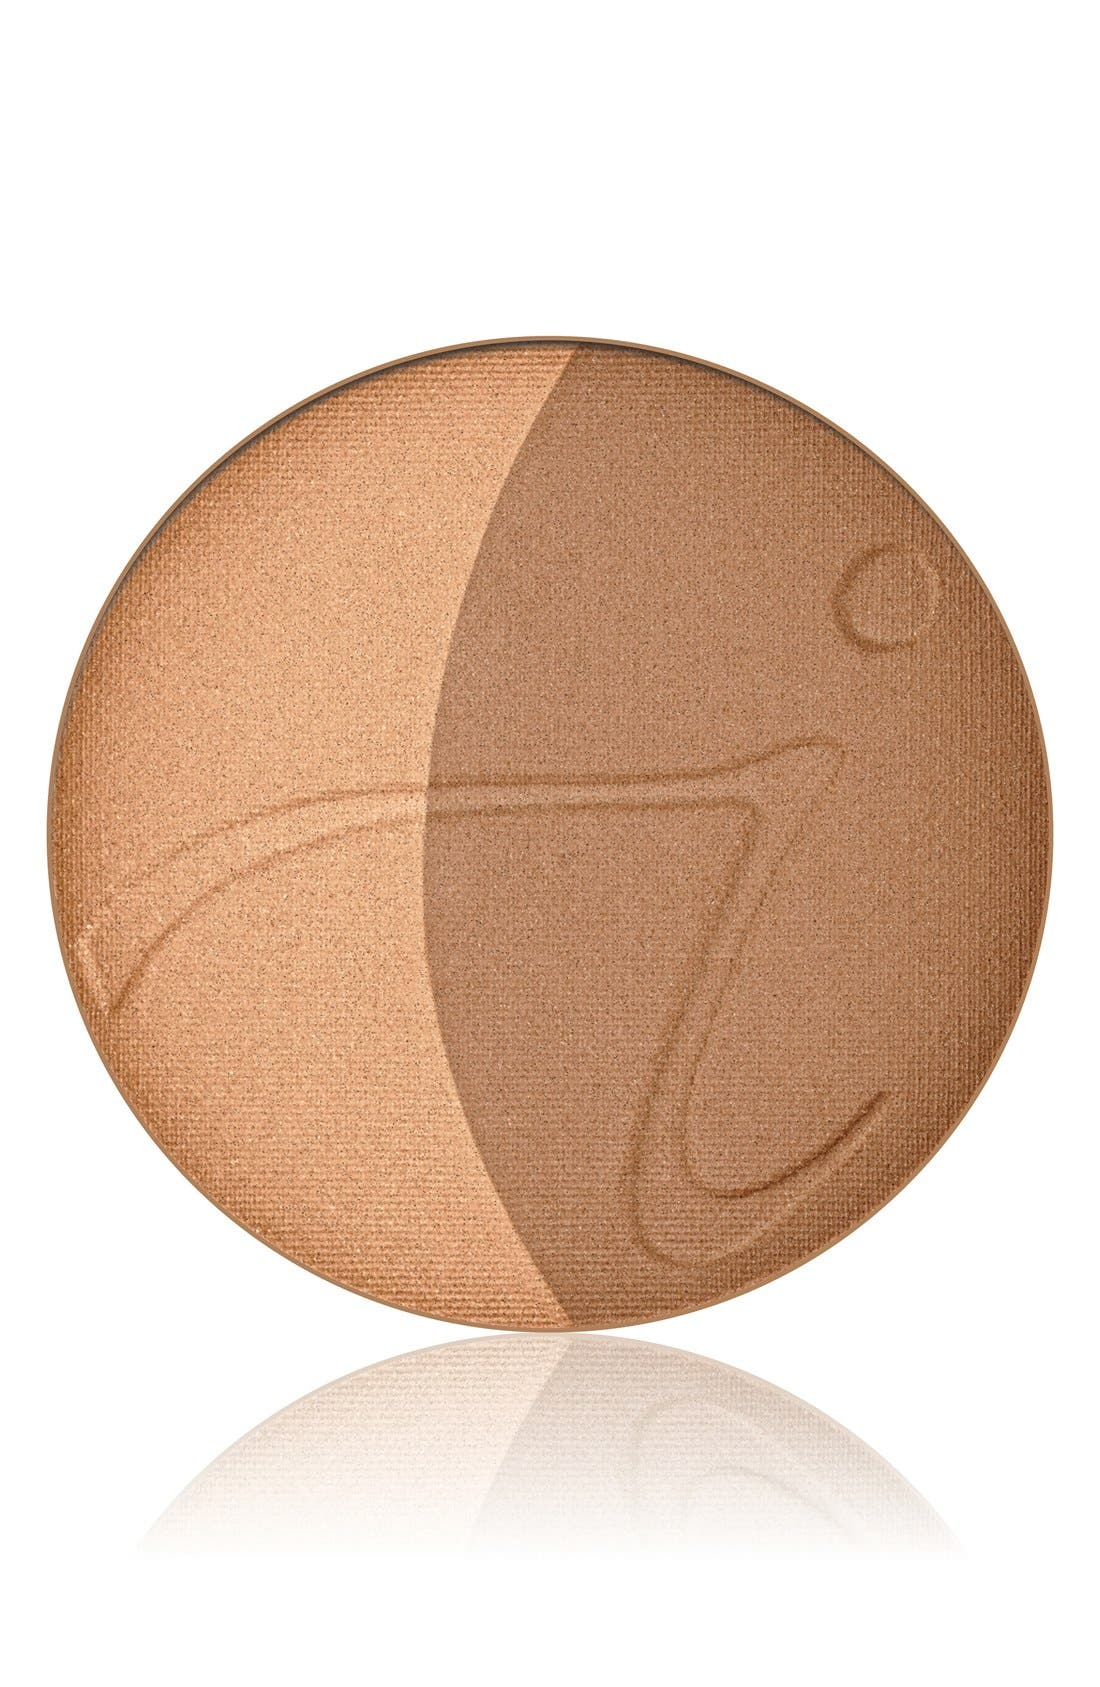 JANE IREDALE,                             So-Bronze<sup>®</sup> 2 Bronzing Powder Refill,                             Main thumbnail 1, color,                             NO COLOR